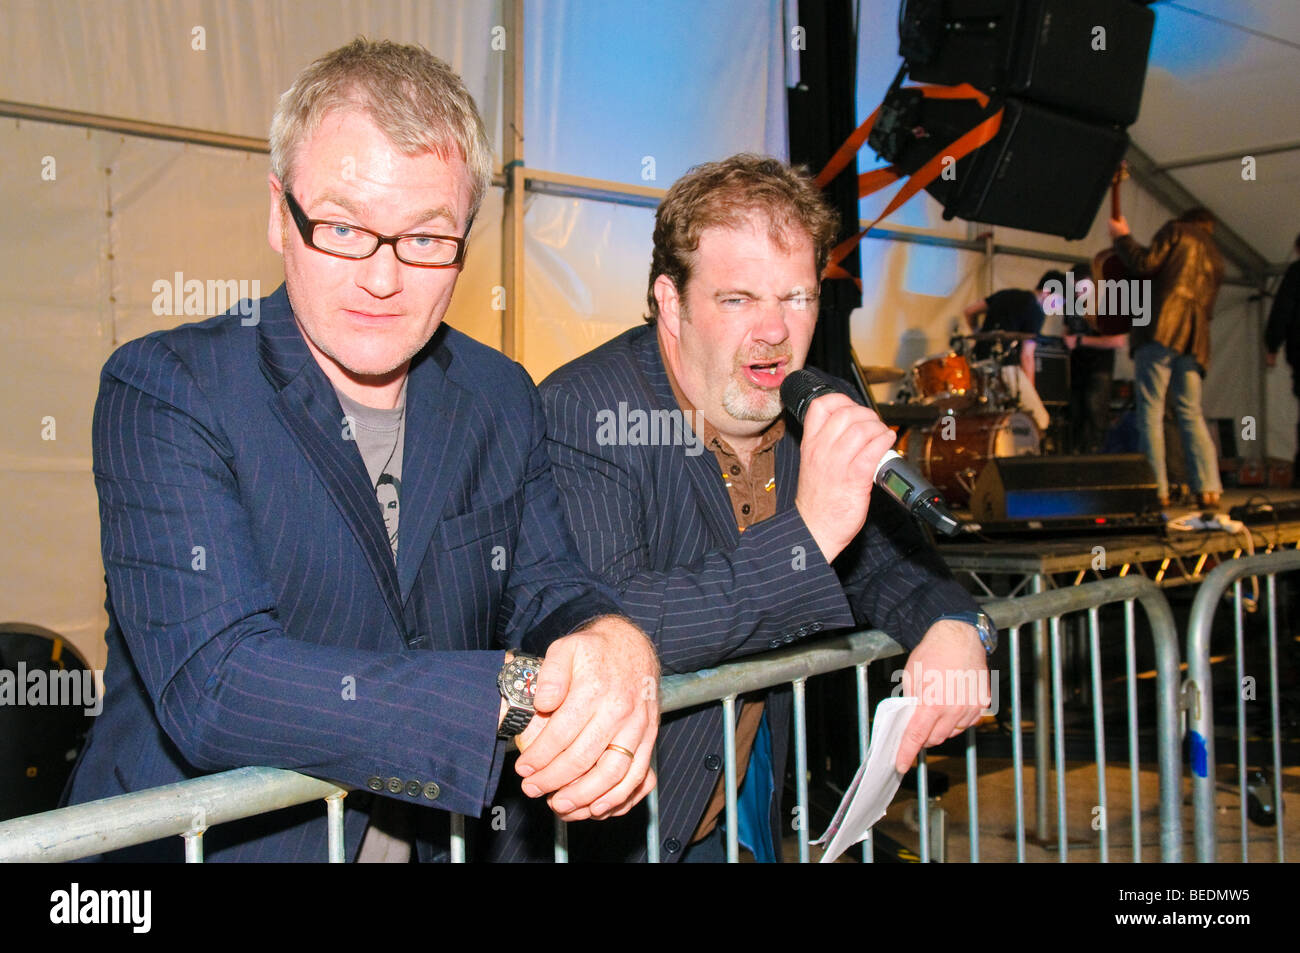 Conor Grimes (l) and Alan McKee (r), Northern Ireland actors, writers, comedians and presenters,  at a concert. - Stock Image